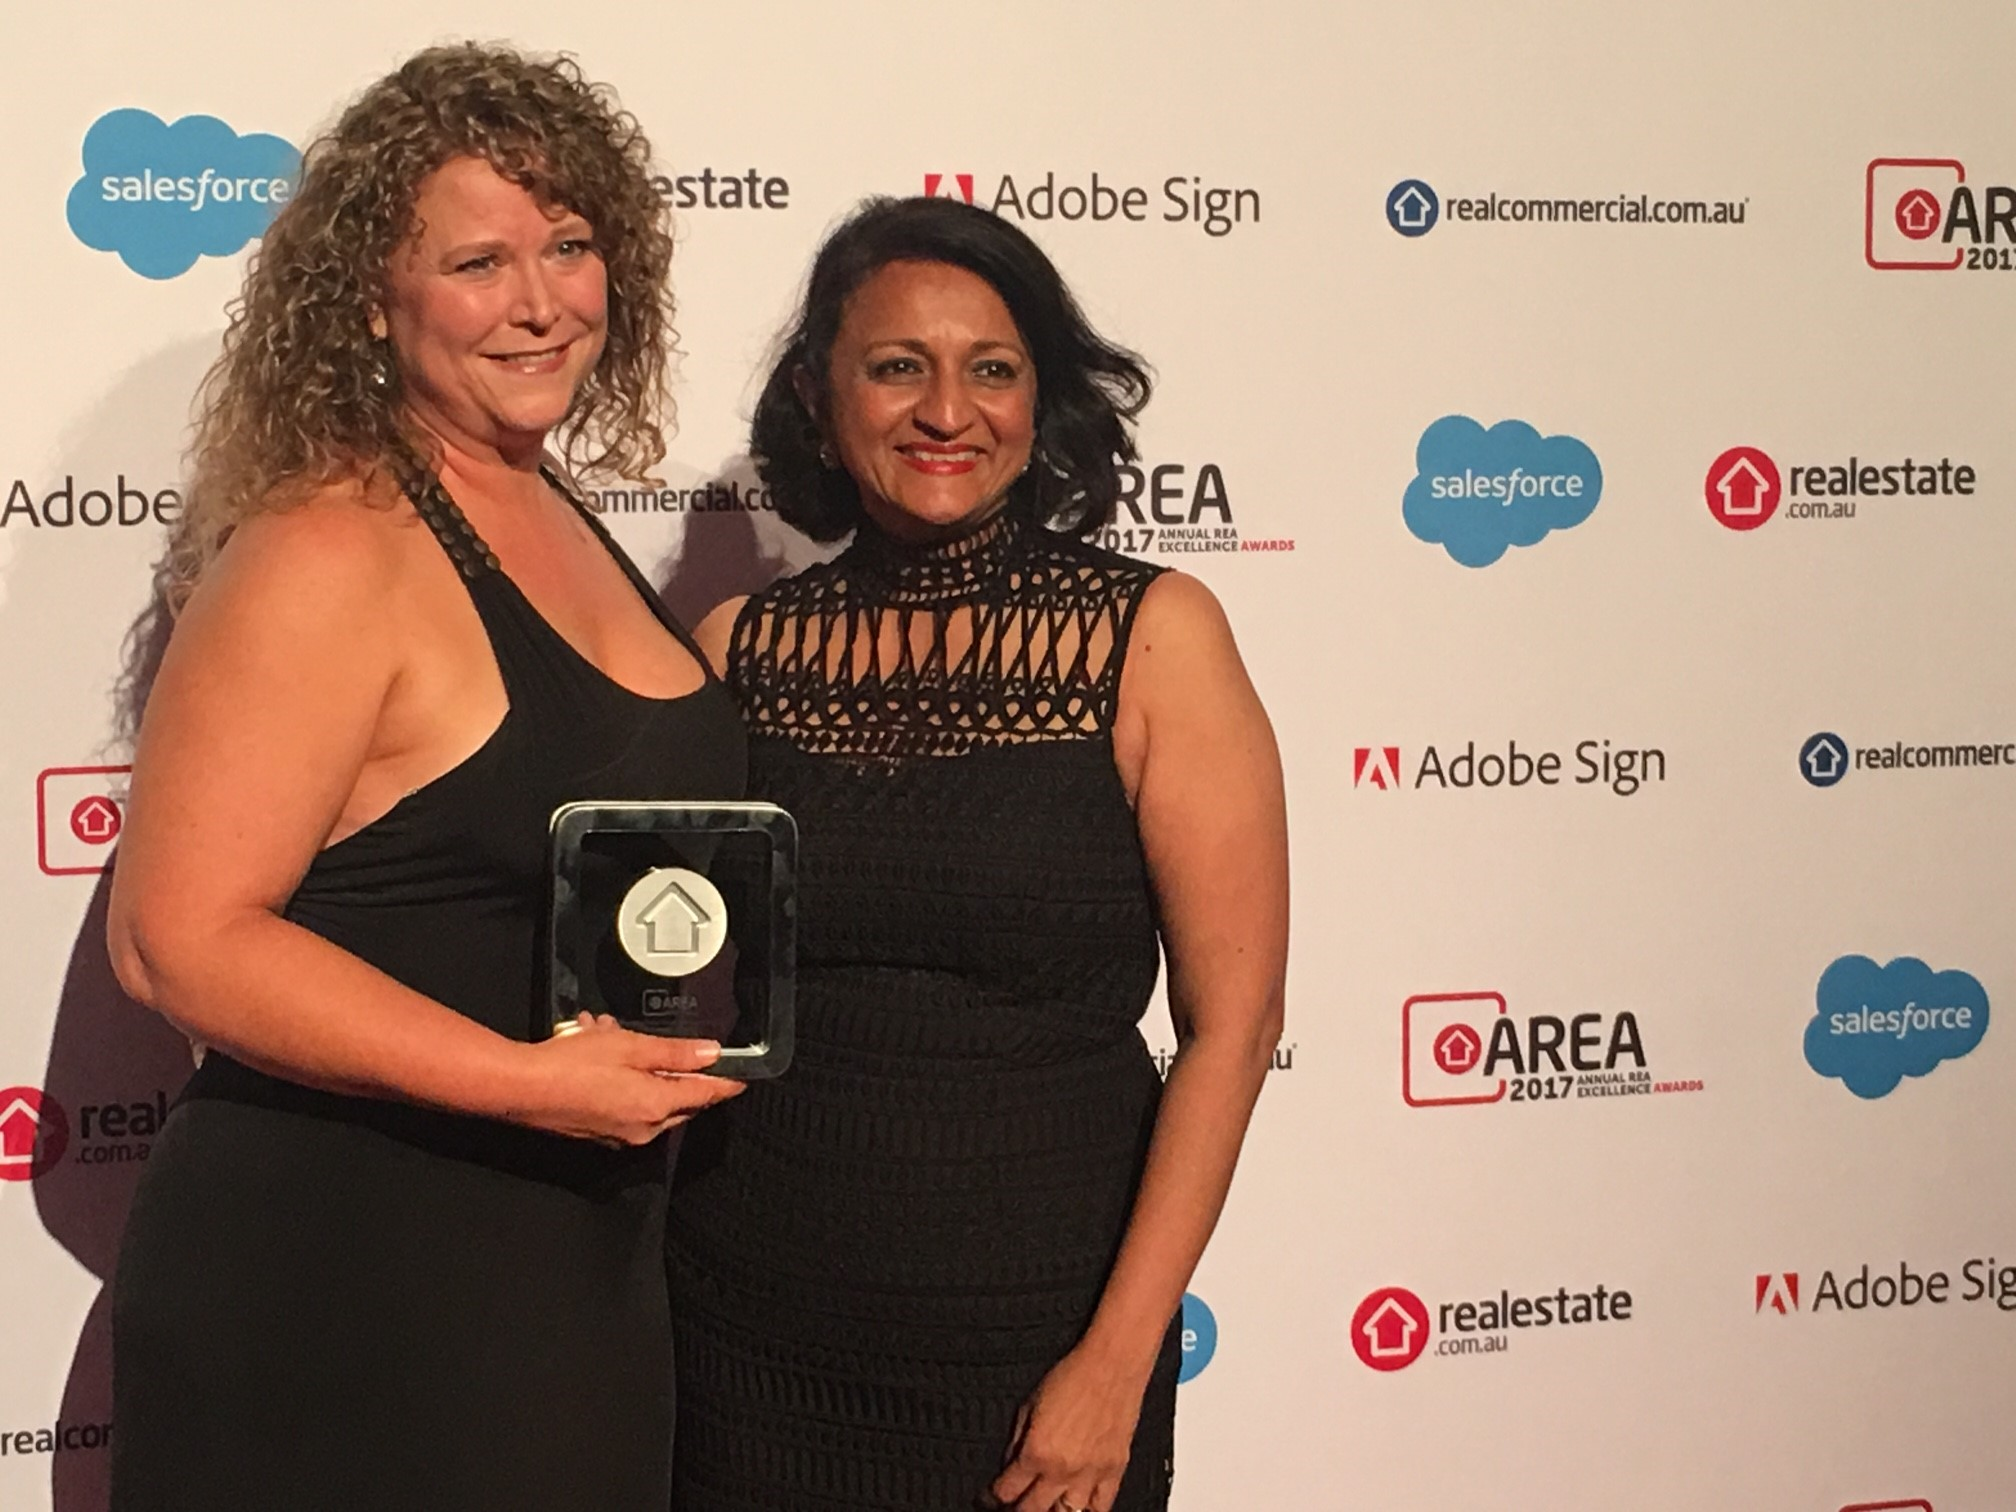 The Harcourts Foundation and White Ribbon Australia partnership wins Community Award